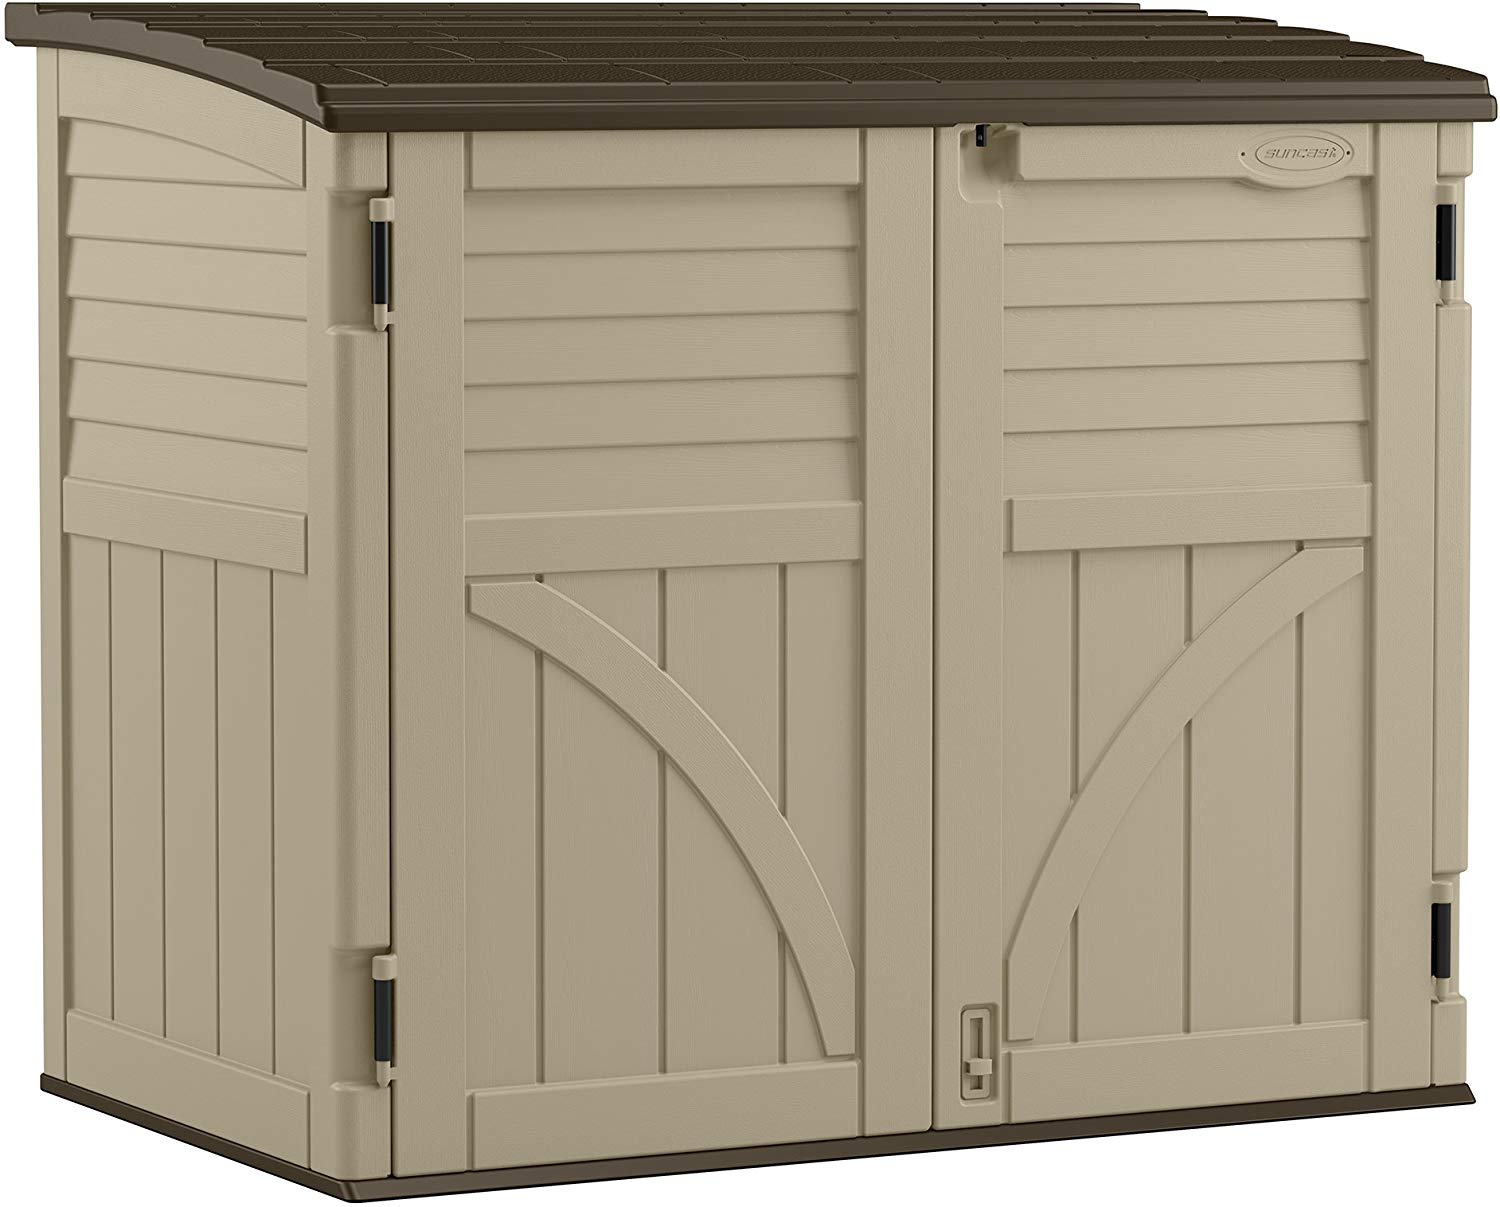 Review of Suncast BMS3400 34 cu. ft. Horizontal Shed